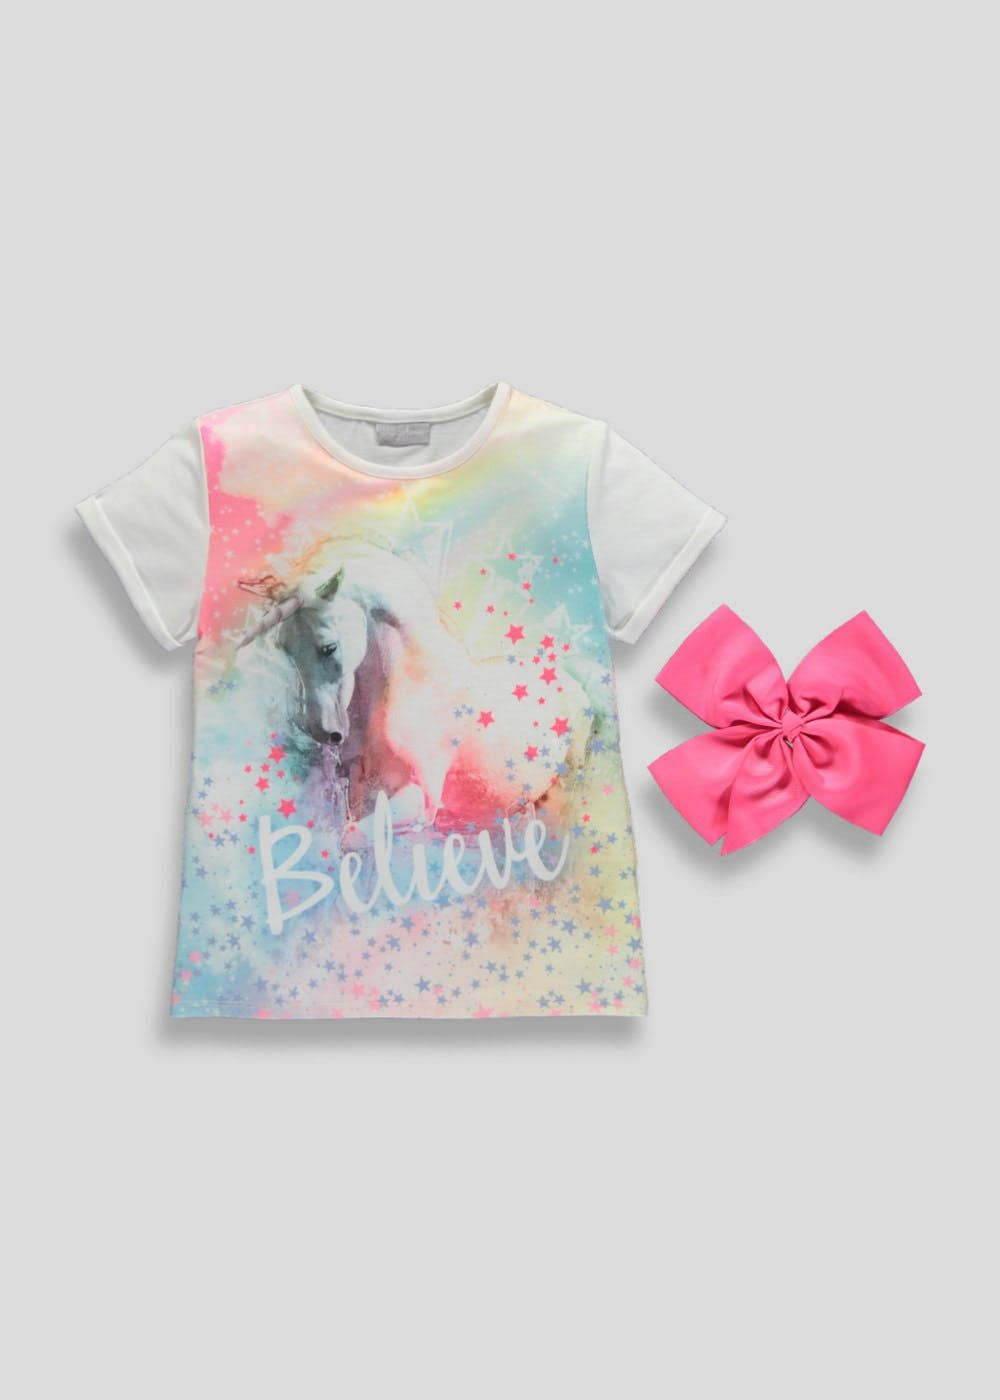 73f689c5e22b3 Little girl's will love this magical tee, designed with a colourful  sublimation print of a unicorn and 'believe' slogan to the front. The  t-shirt comes.